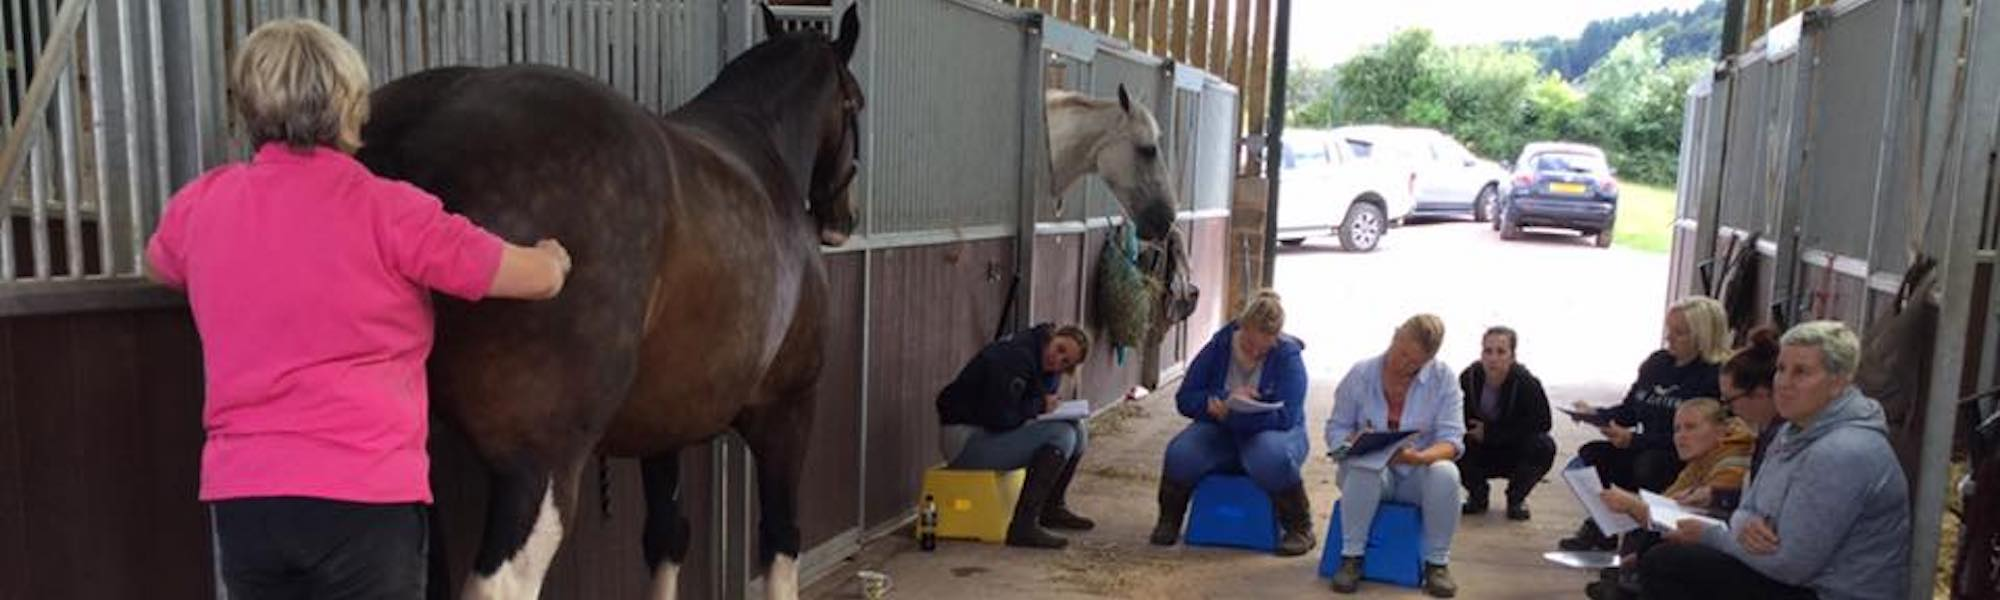 Equine Massage Training header image 2